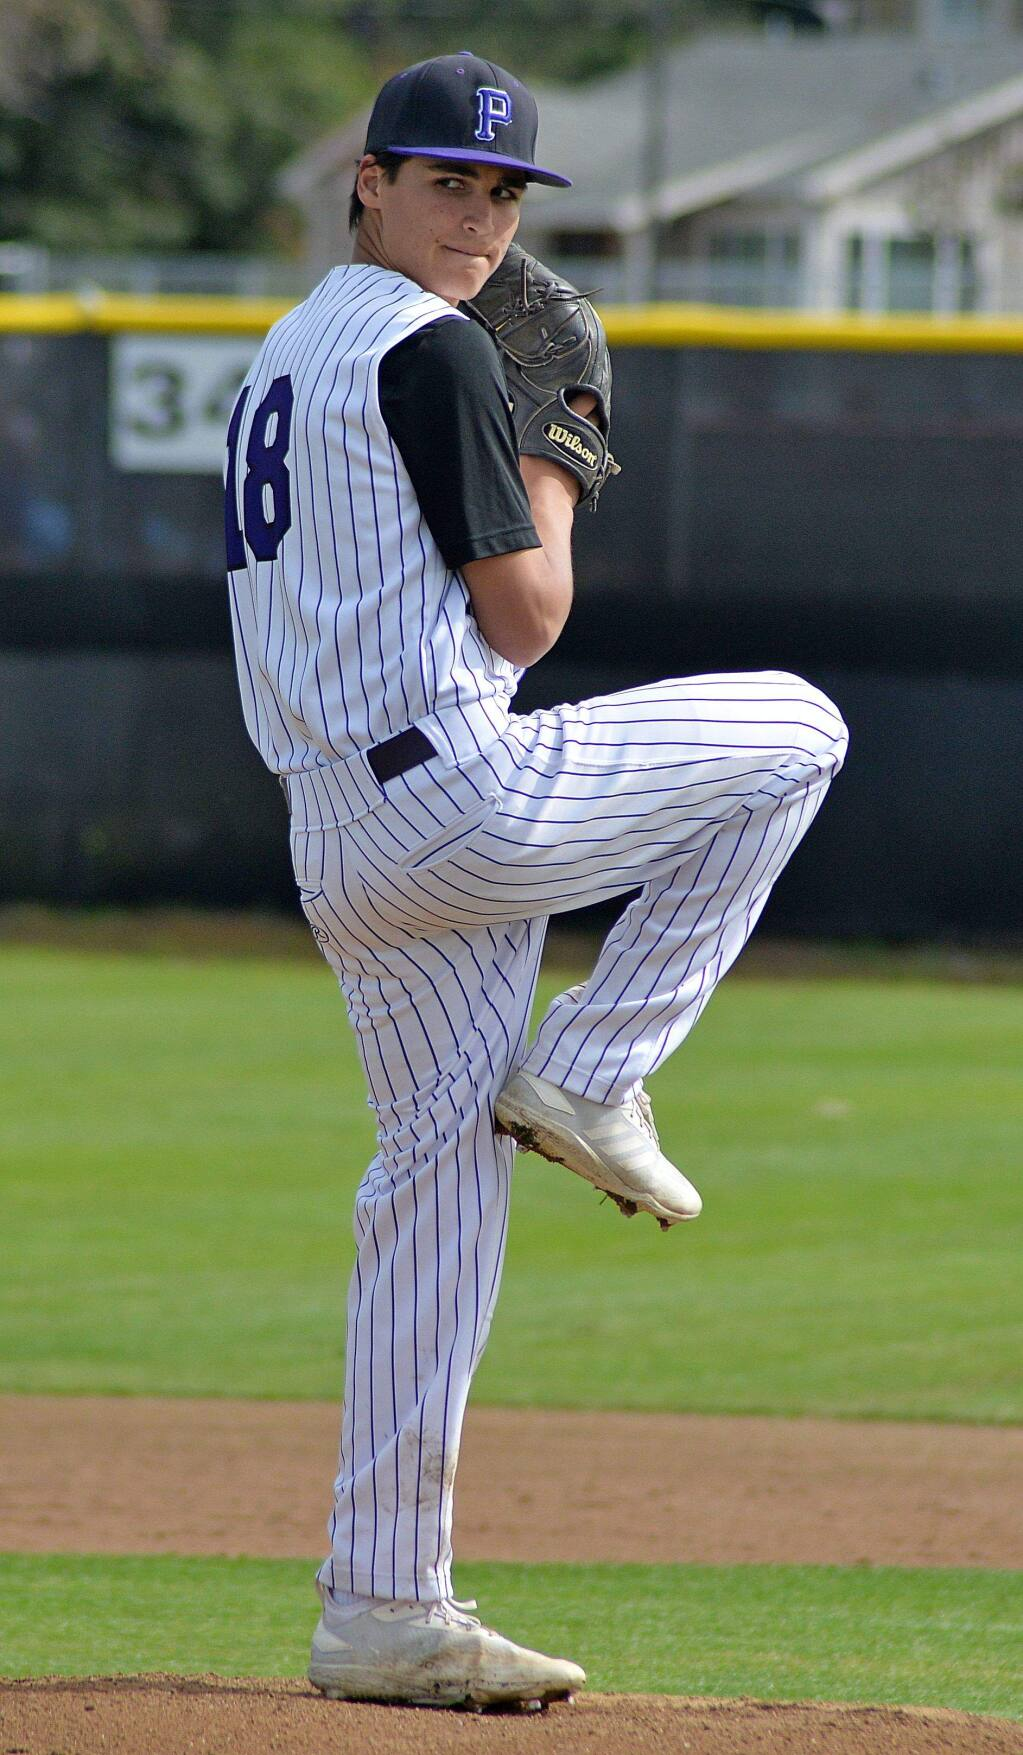 SUMNER FOWLER/FOR THE ARGUS-COURIERMark Wolbert pitched Petaluma to a big VVAL win over Sonoma Vallehy.